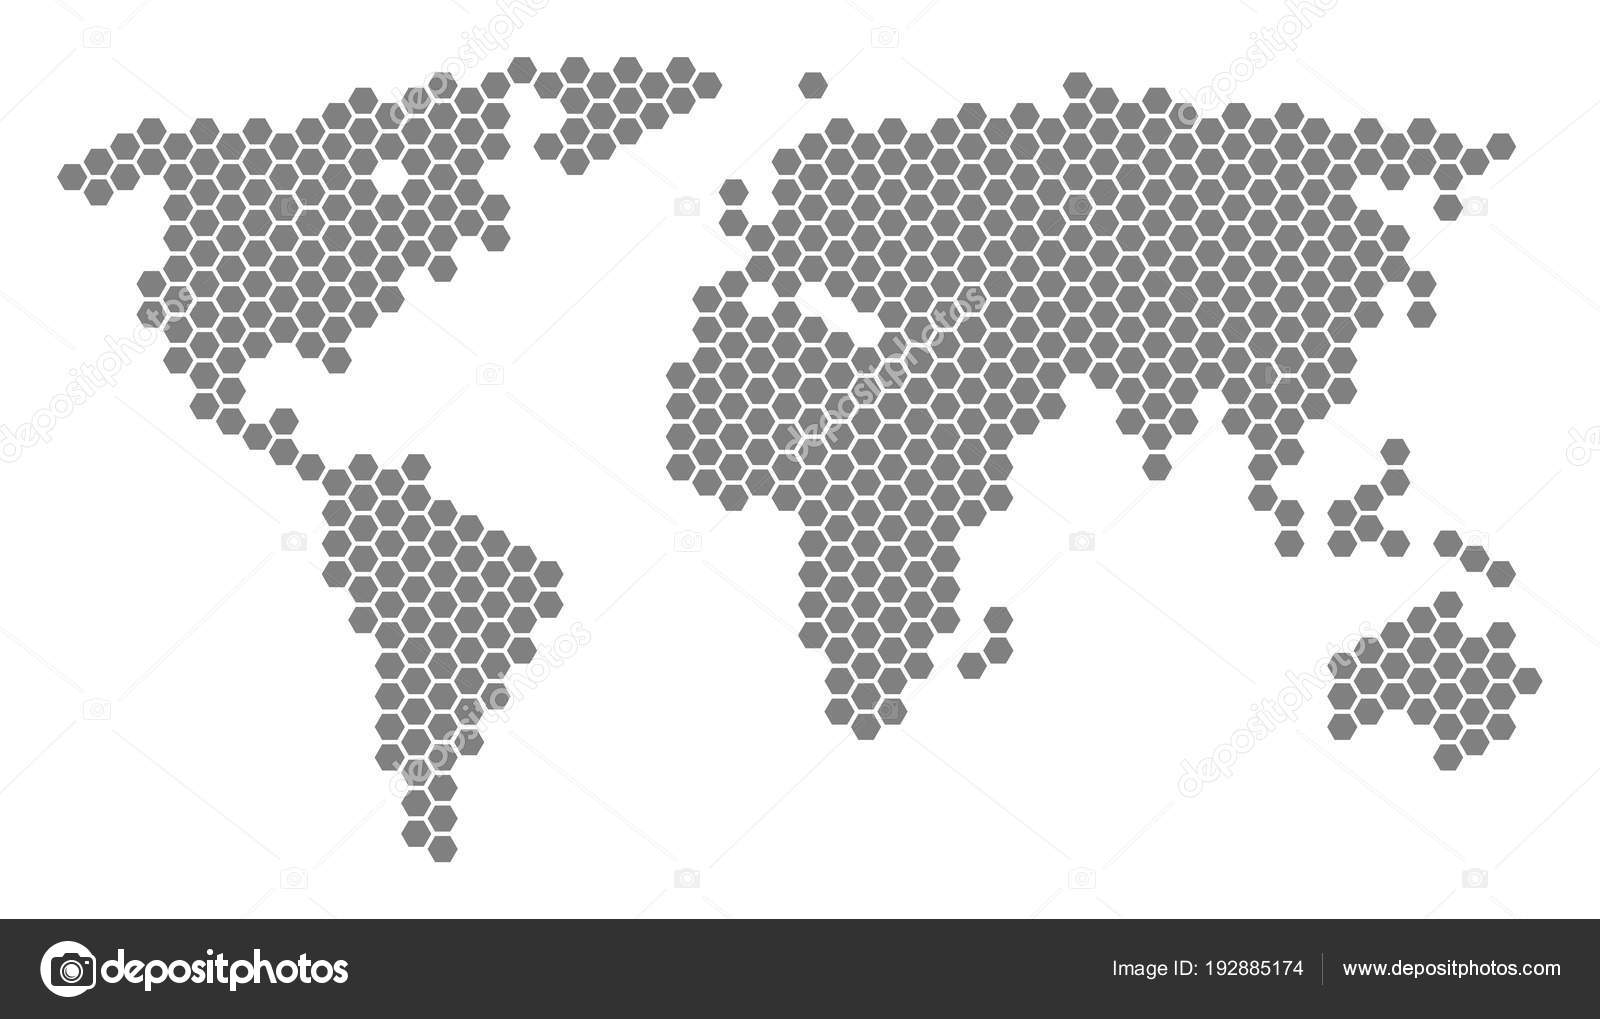 Gray hexagon world map stock vector ahasoft 192885174 grey hexagonal world map vector geographic map in gray color on a white background vector composition of world map constructed of hexagonal items gumiabroncs Images